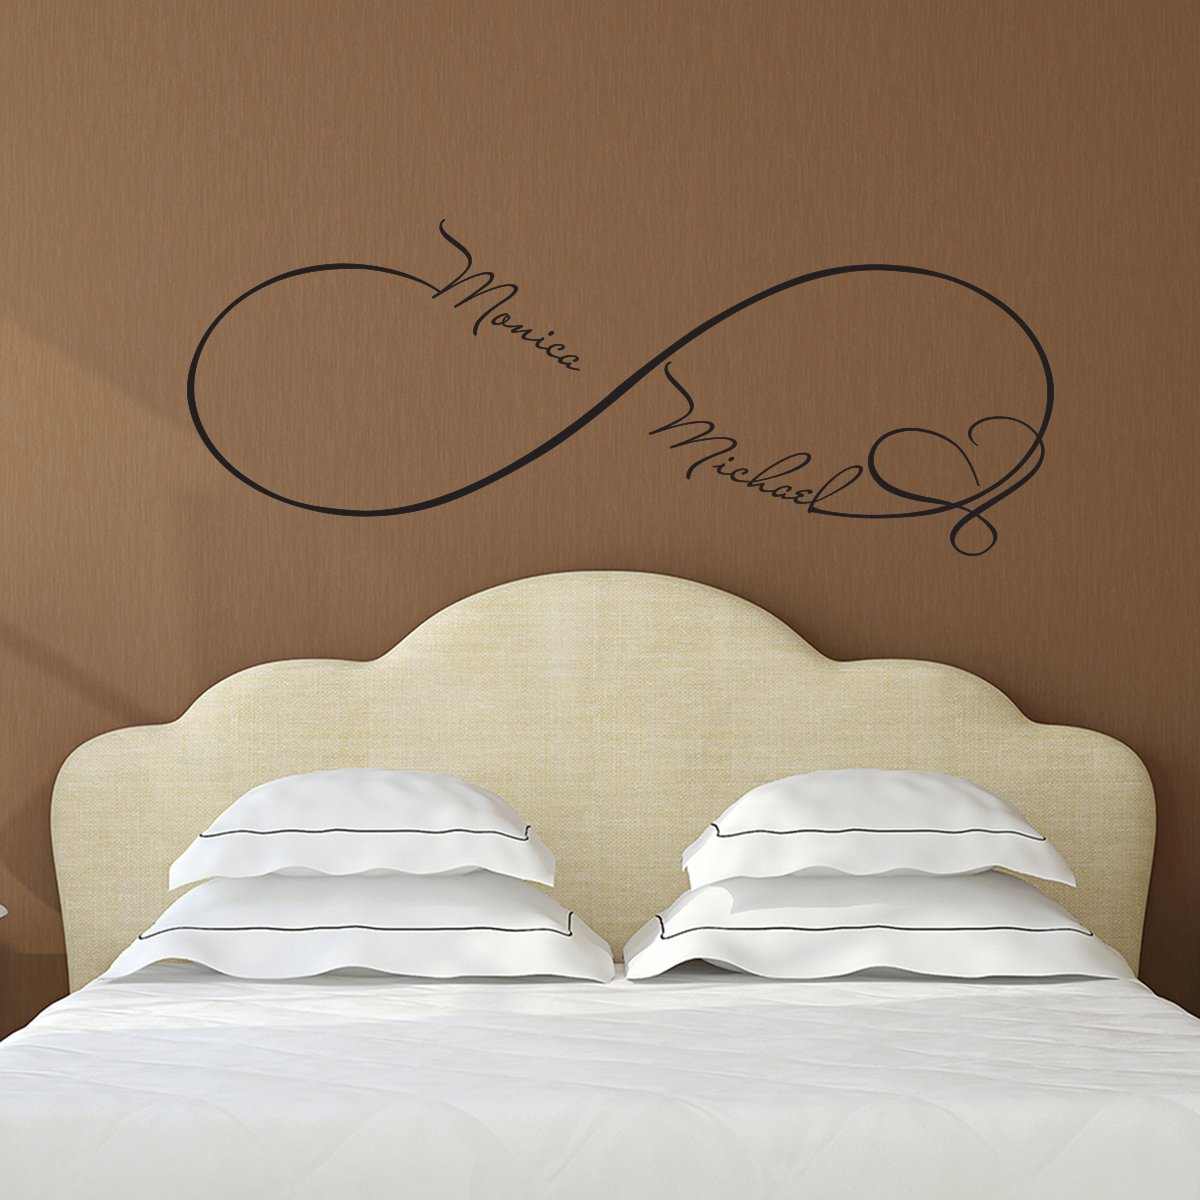 Custom Wall Decals Infinity Sign Heart Symbol Decal Family Name Sticker  Names Vinyl Decal Bedroom Home Decor Personilized Wedding Gift For Couples  FD49 ... Part 69